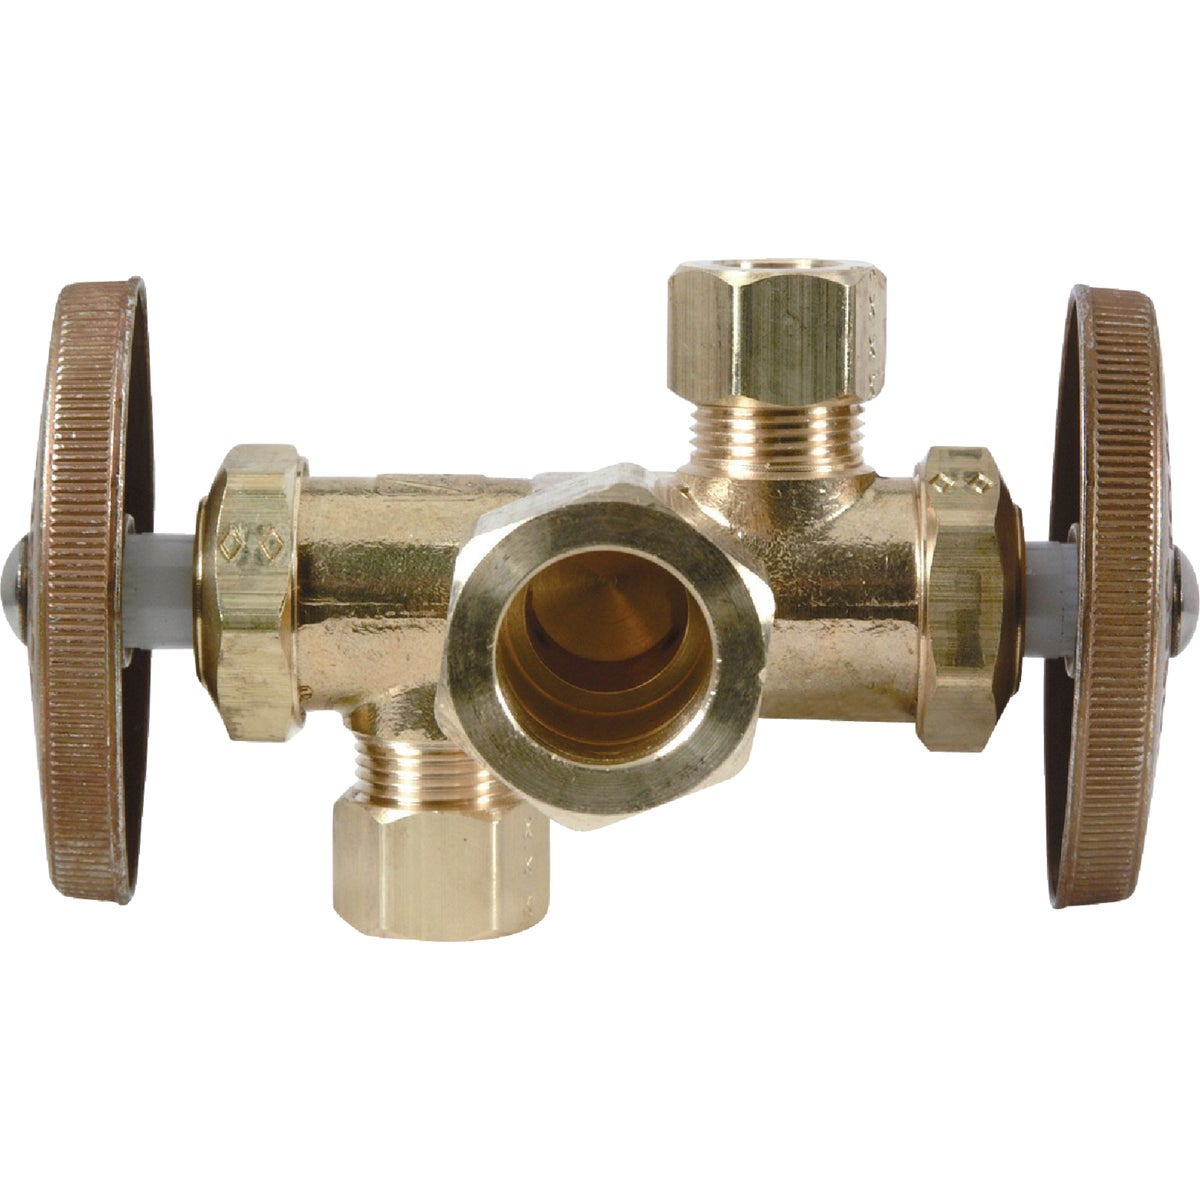 5/8CX3/8X1/4 DUAL VALVE - CR1900DVX R by Brass Craft